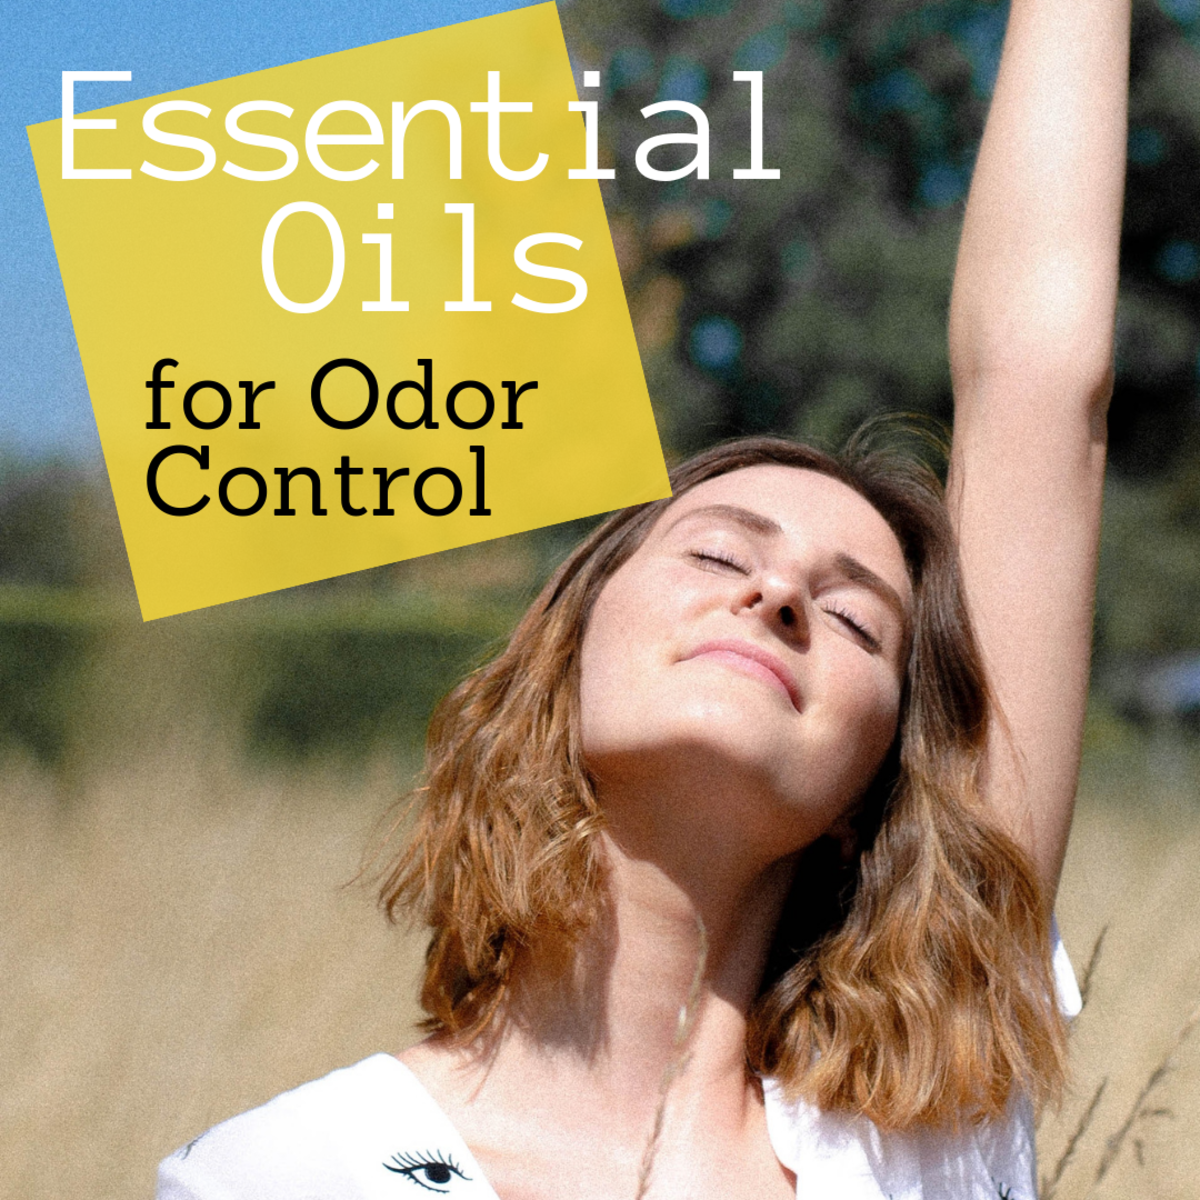 What are the best essential oils for healthy and clean-smelling underarms?